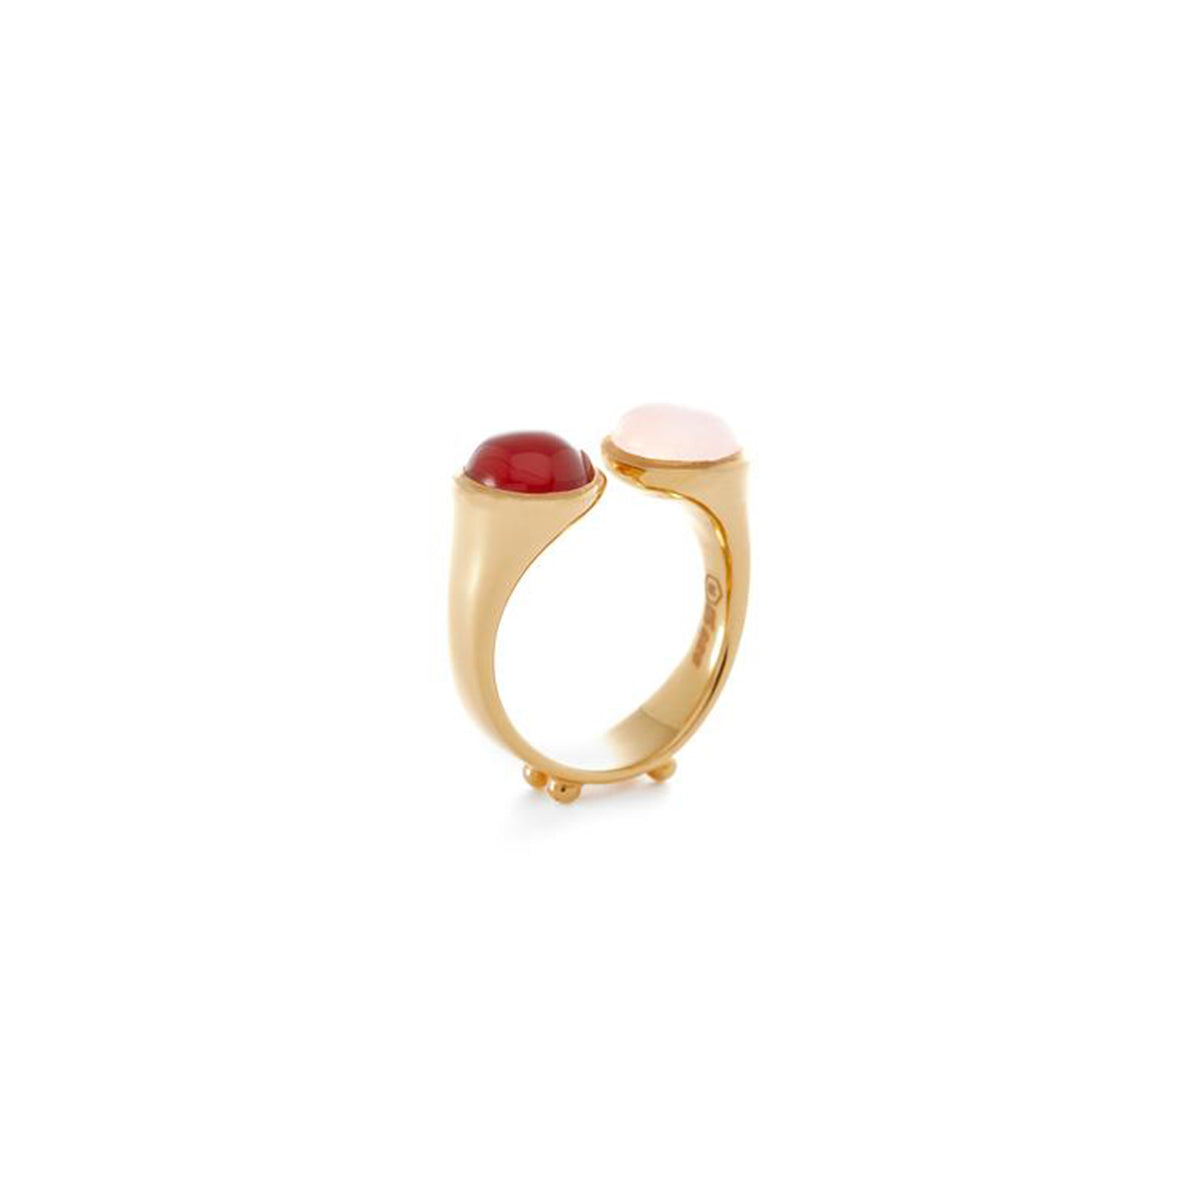 Germain Ring in Red and Pink Agate